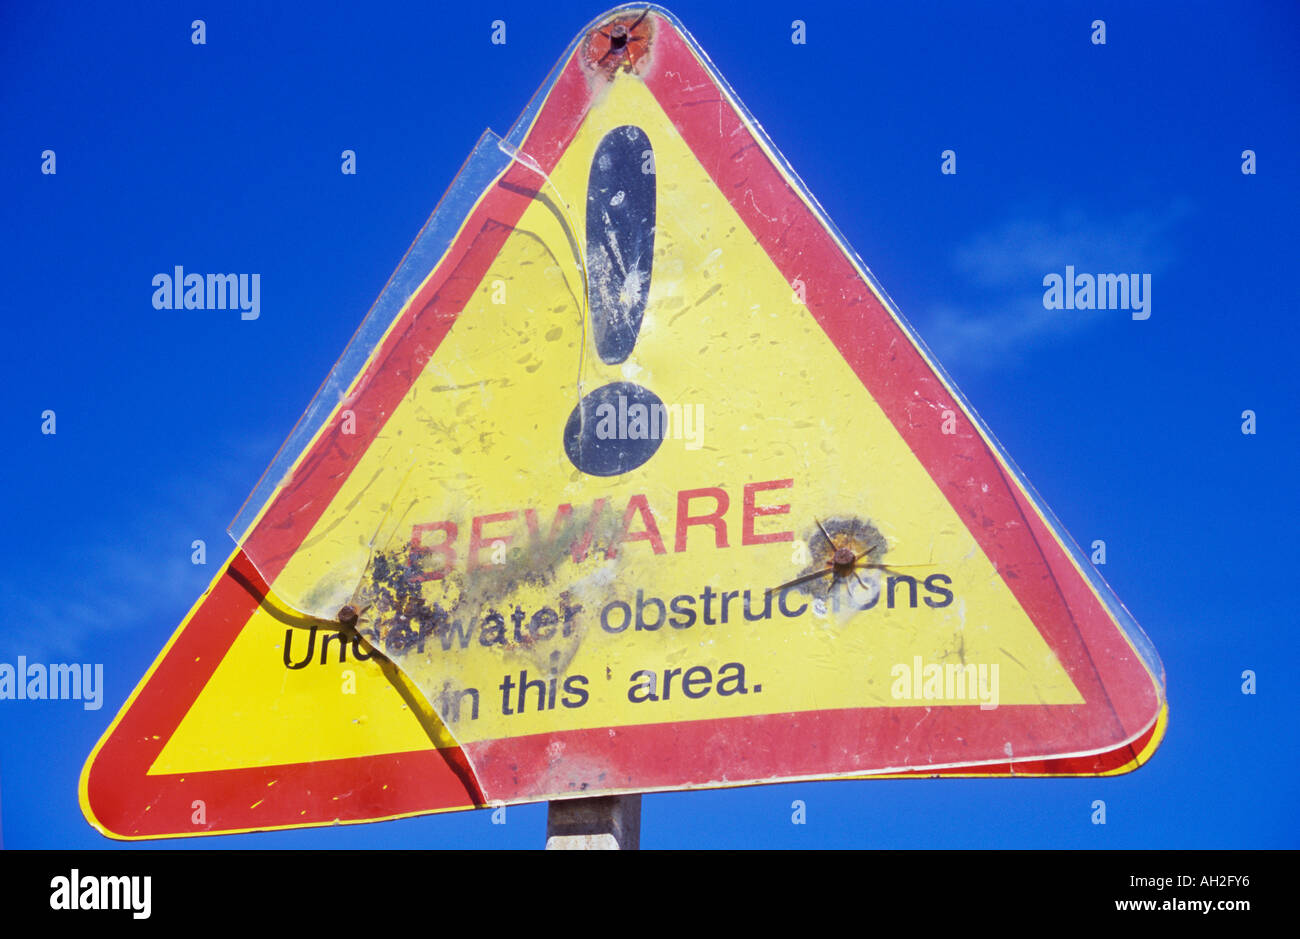 Battered triangular red yellow and black sign against bright blue sky stating Beware Underwater obstructions in Stock Photo